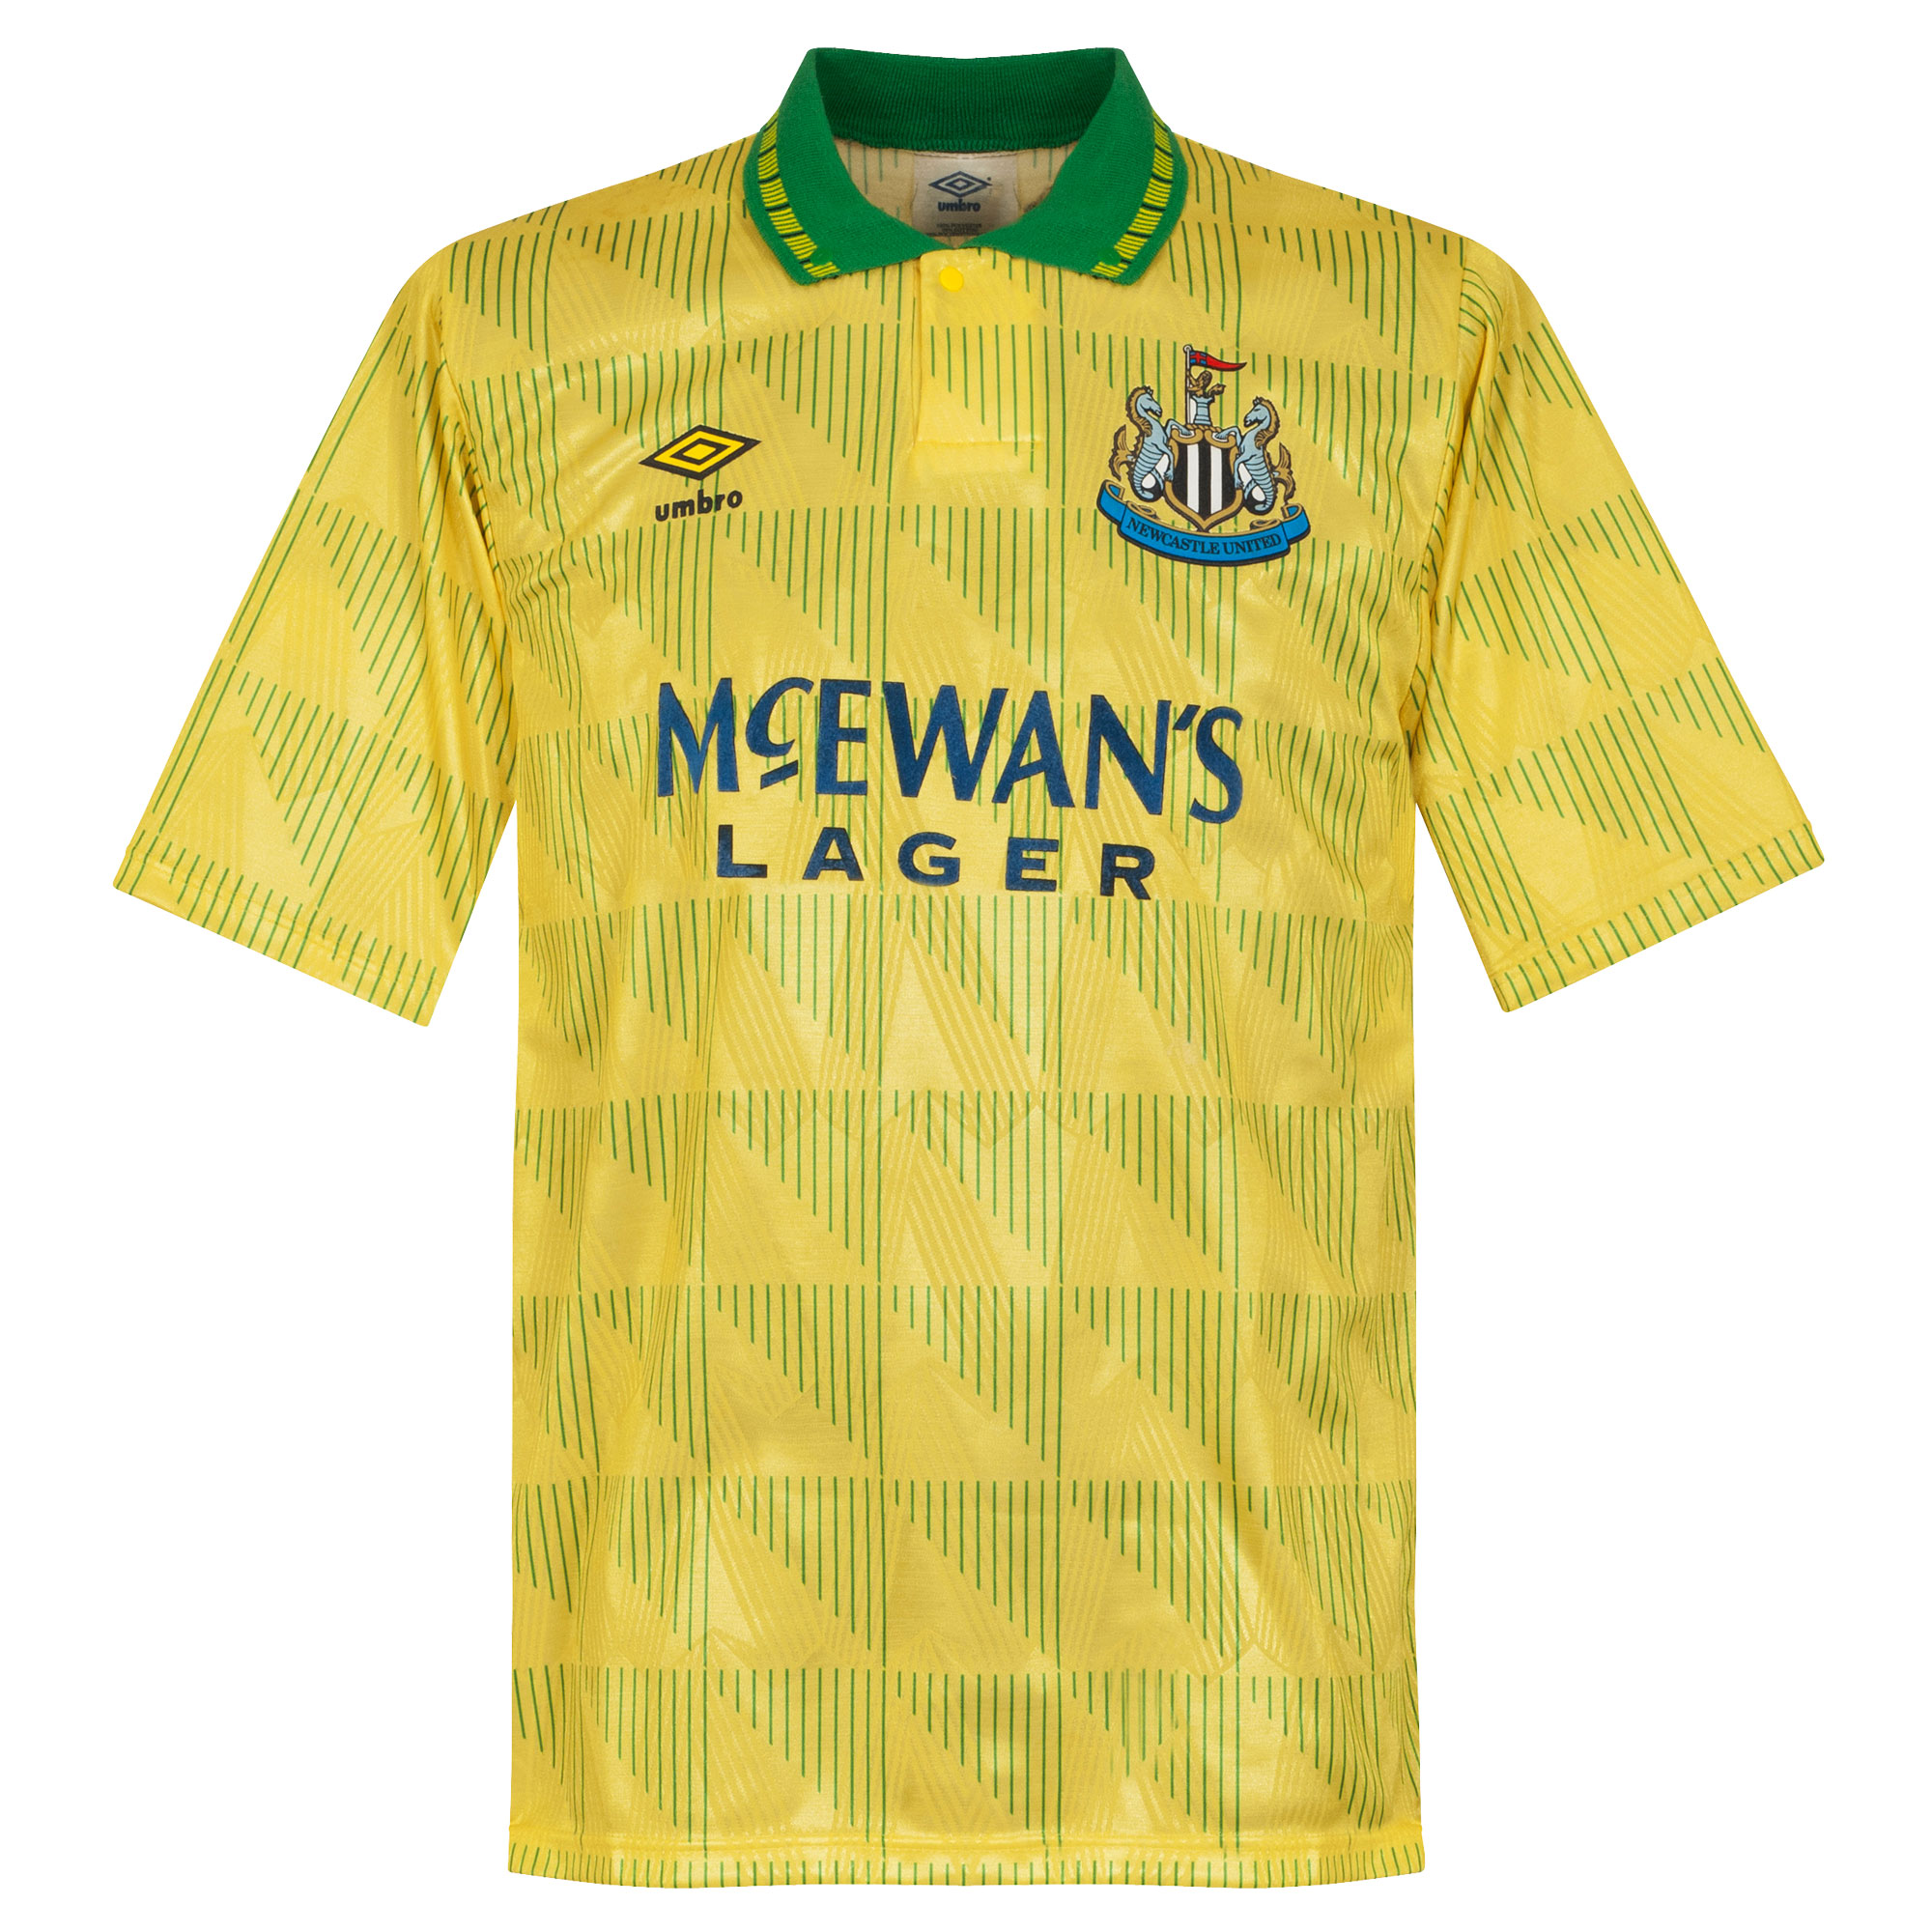 Umbro Newcastle United 1992-1993 Away Shirt - USED Condition (Great) - Size Large